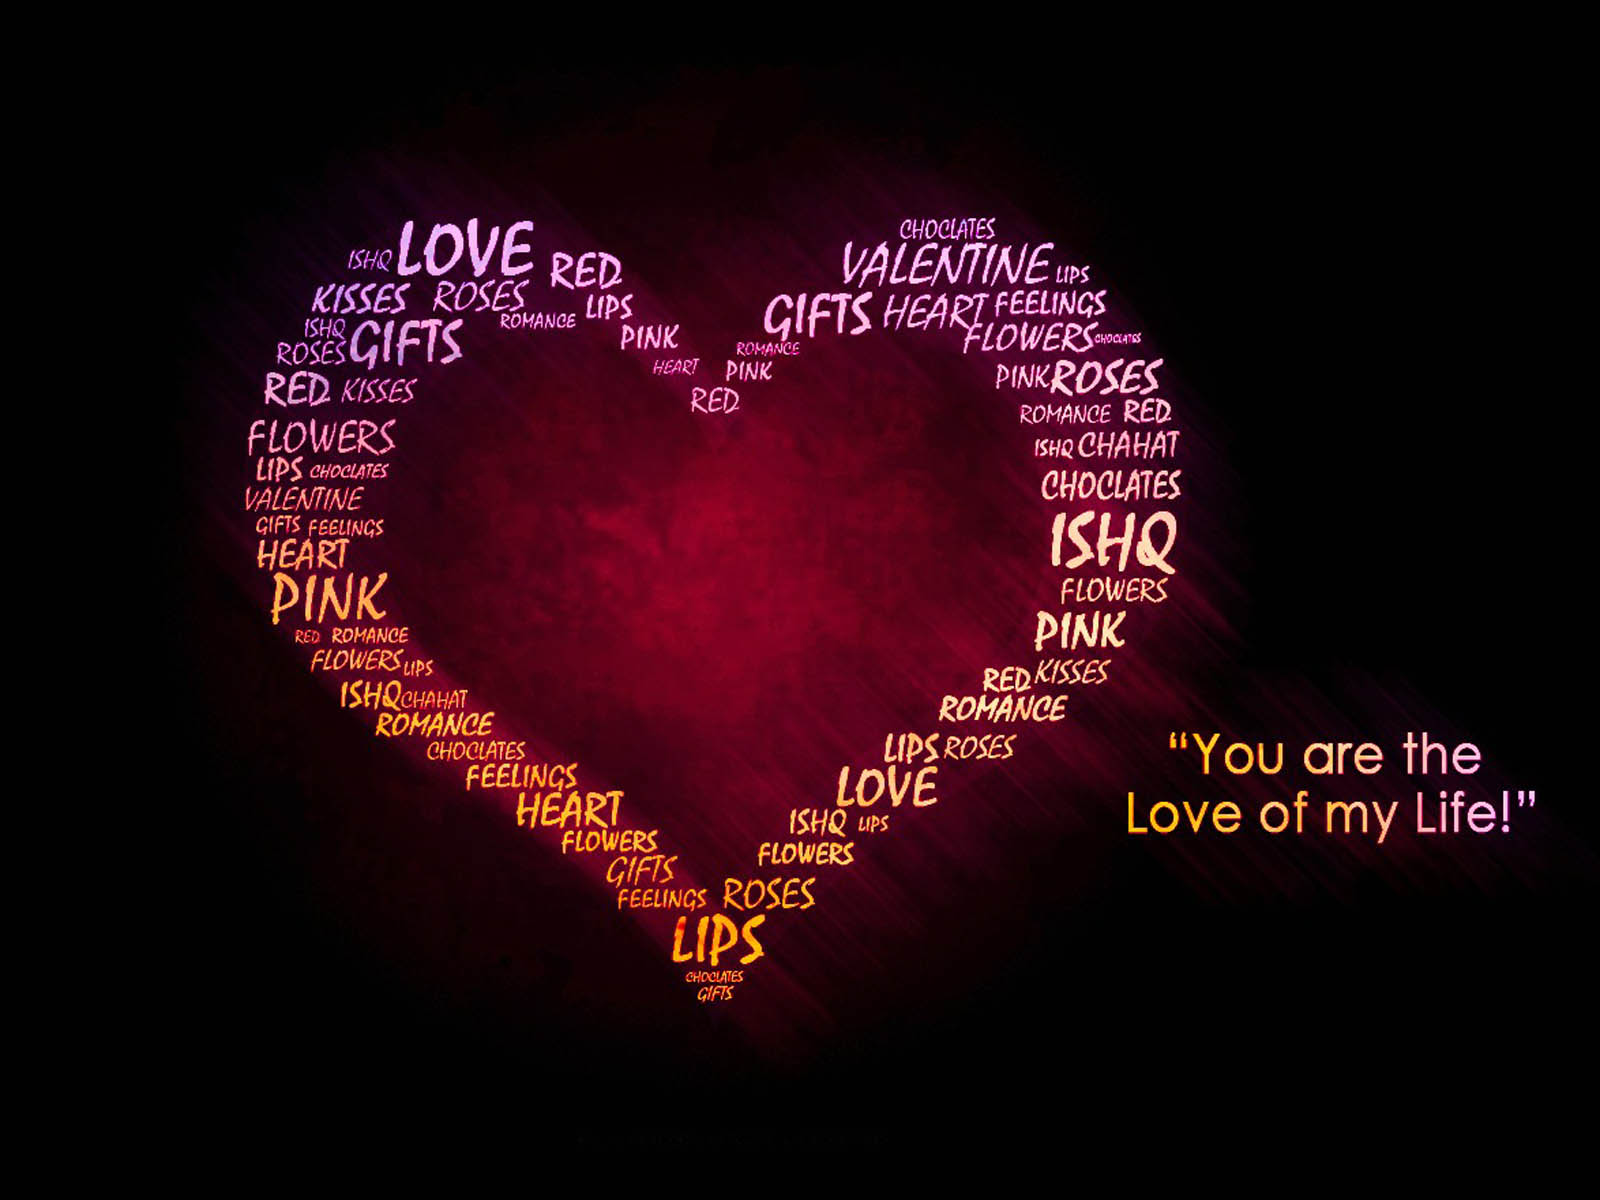 My Love Quotes Wallpaper : wallpapers: Love Quotes Desktop Wallpapers